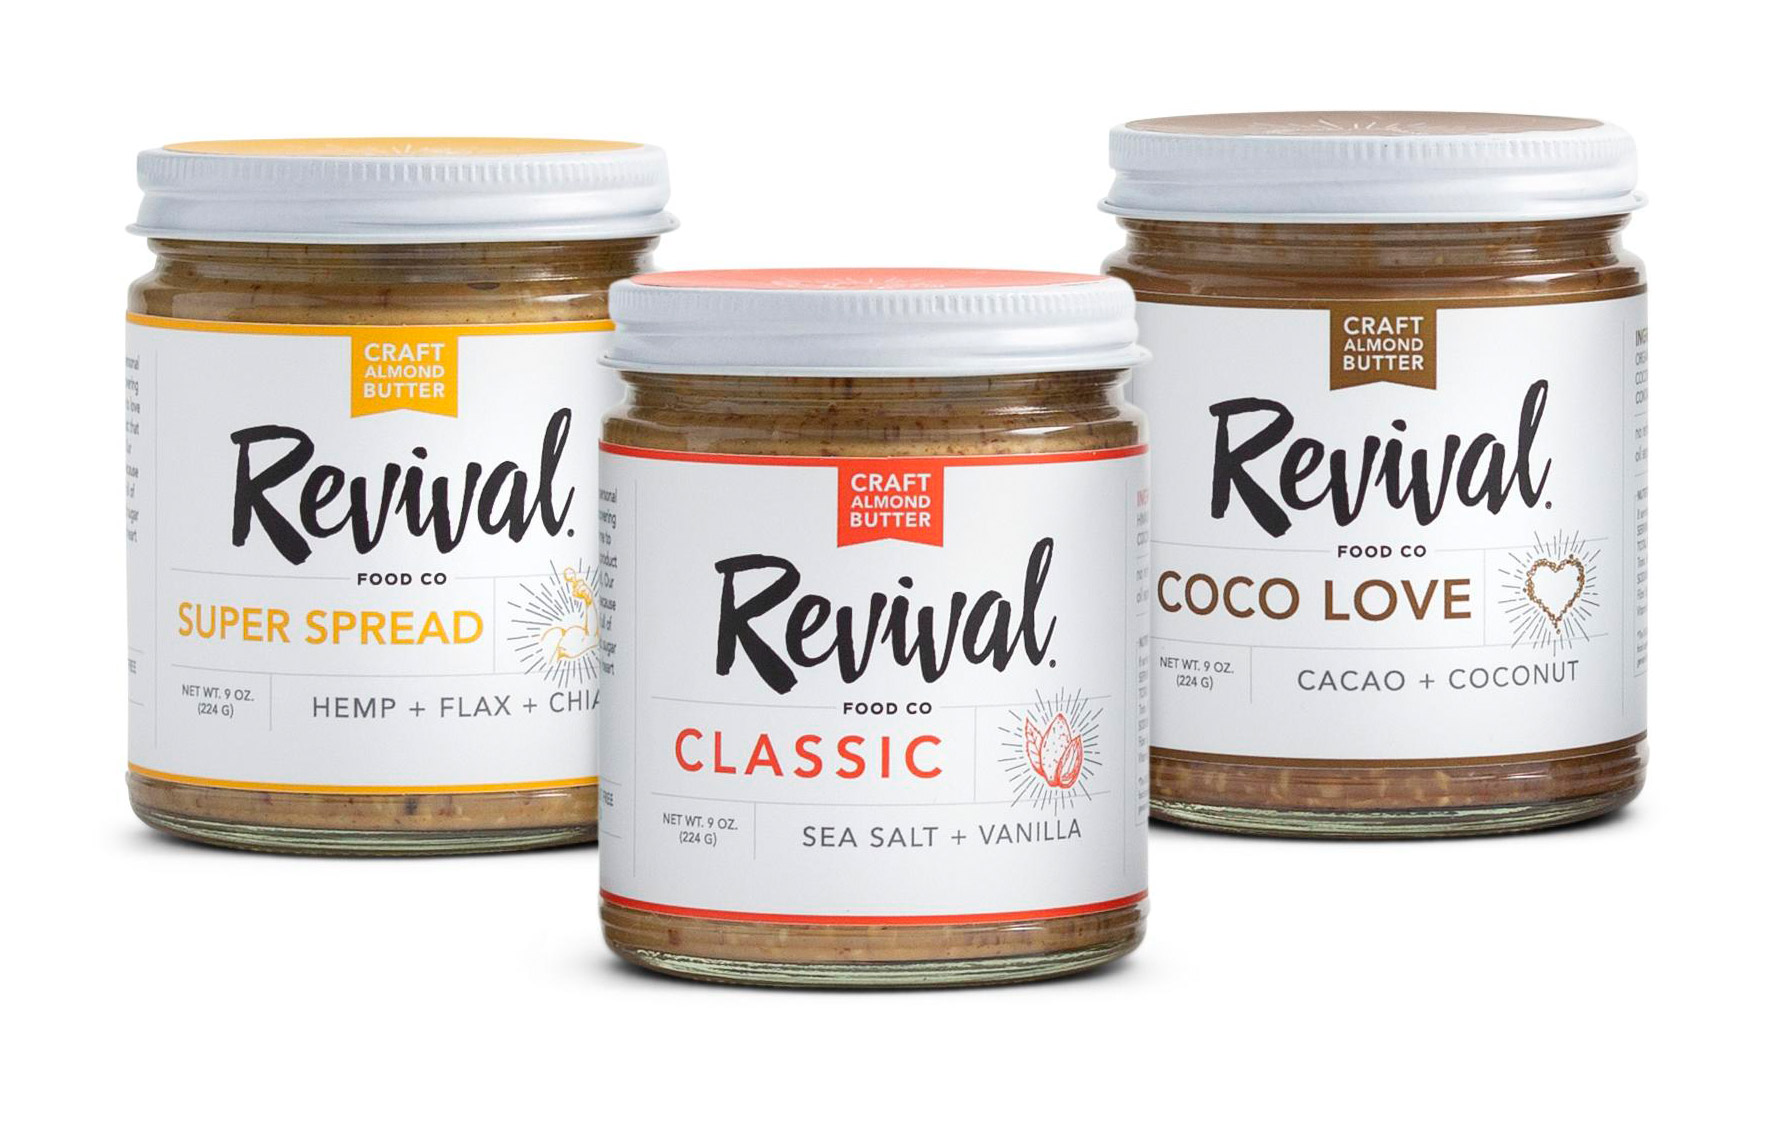 Revival almond butters